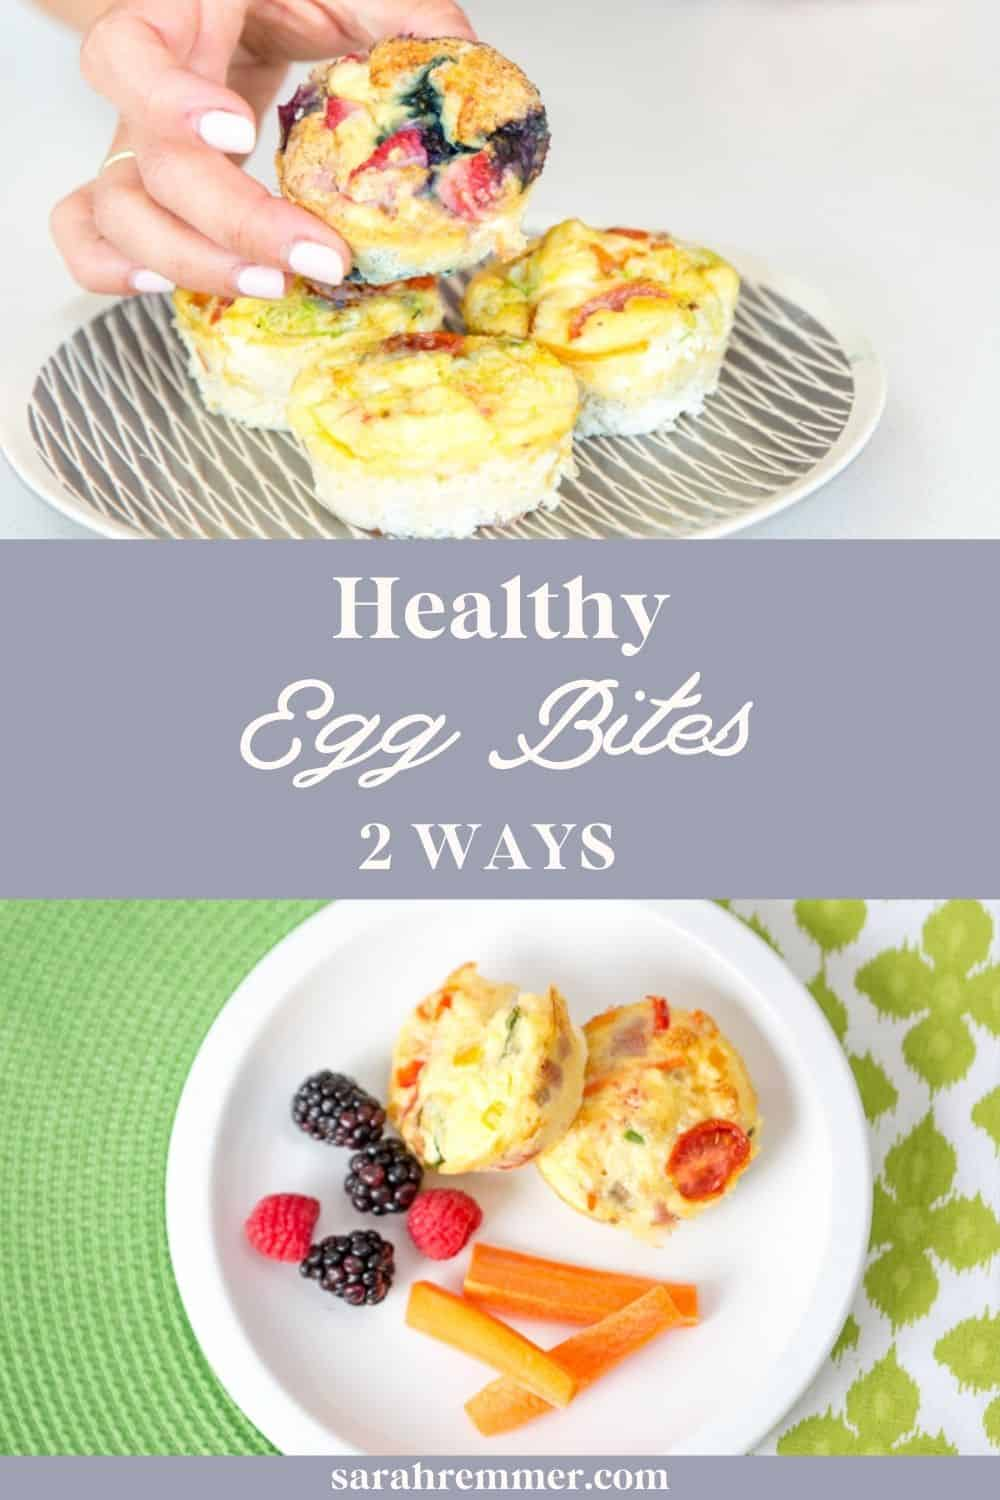 These egg bites in muffin tins make an easy and nutritious protein breakfast, lunch or dinner for the whole family.